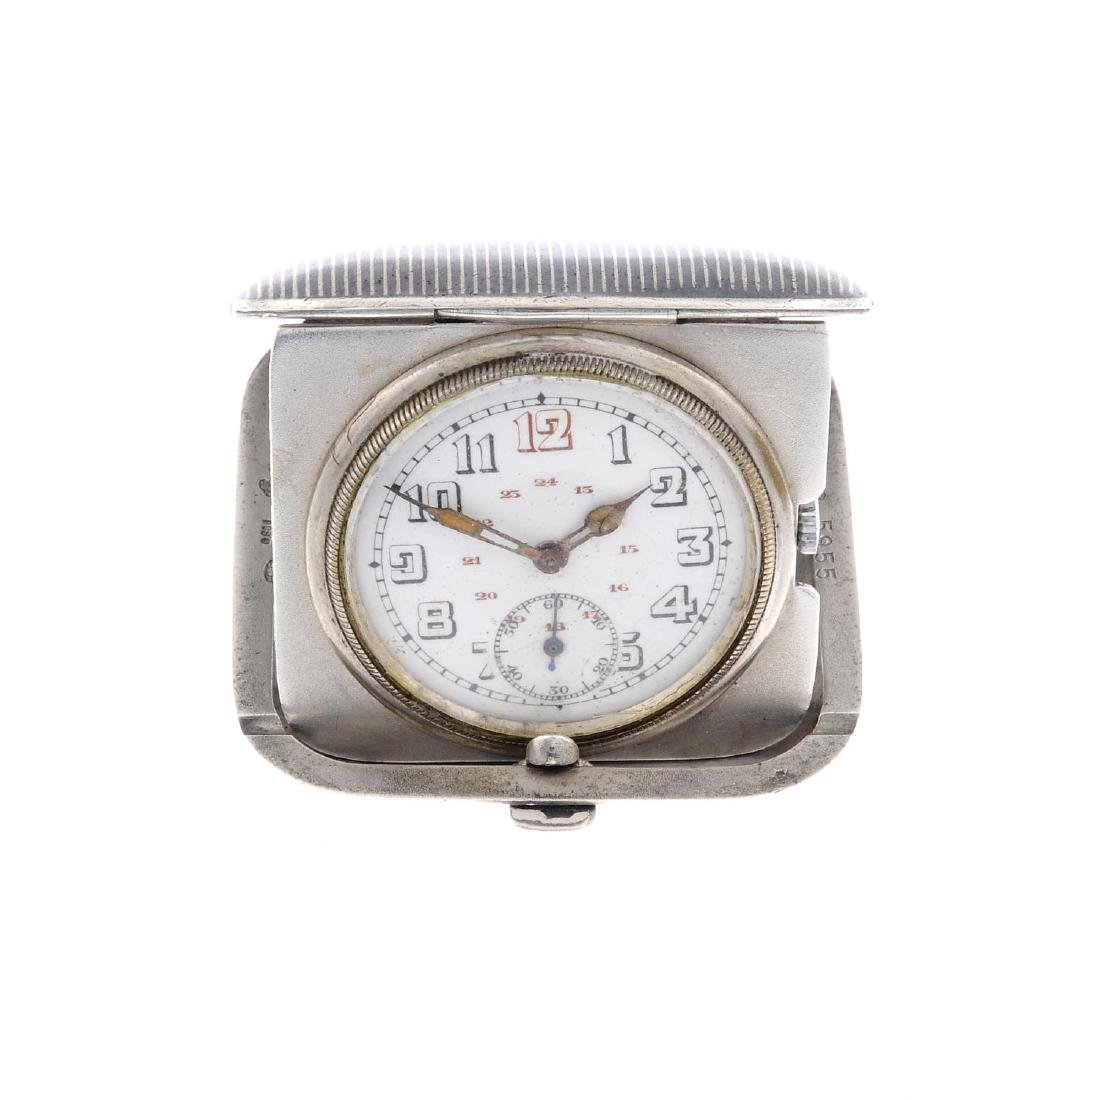 A travel clock. White metal case, stamped 0.800.